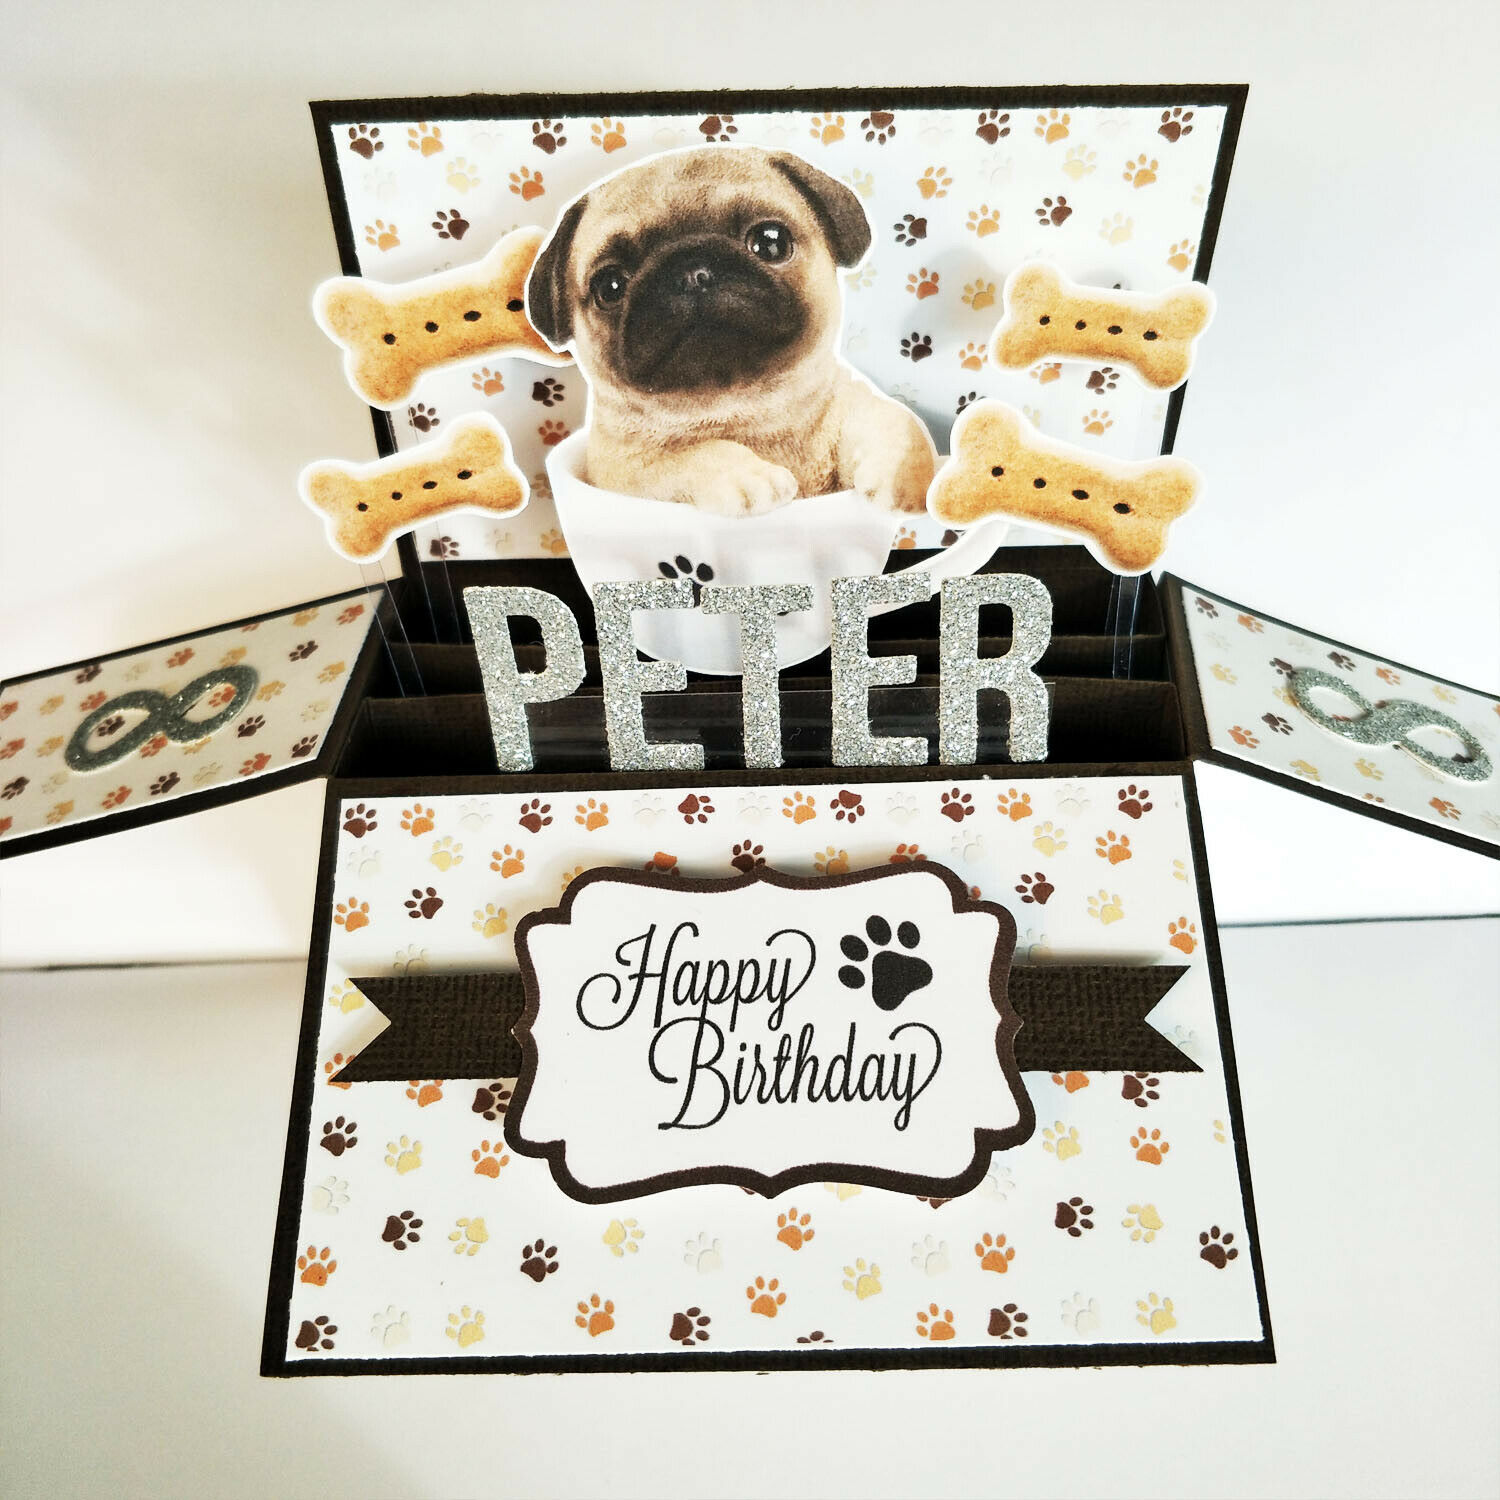 Handmade Name & Age Personalized birthday card, dog birthday card dog puppy card - Dog in a cup